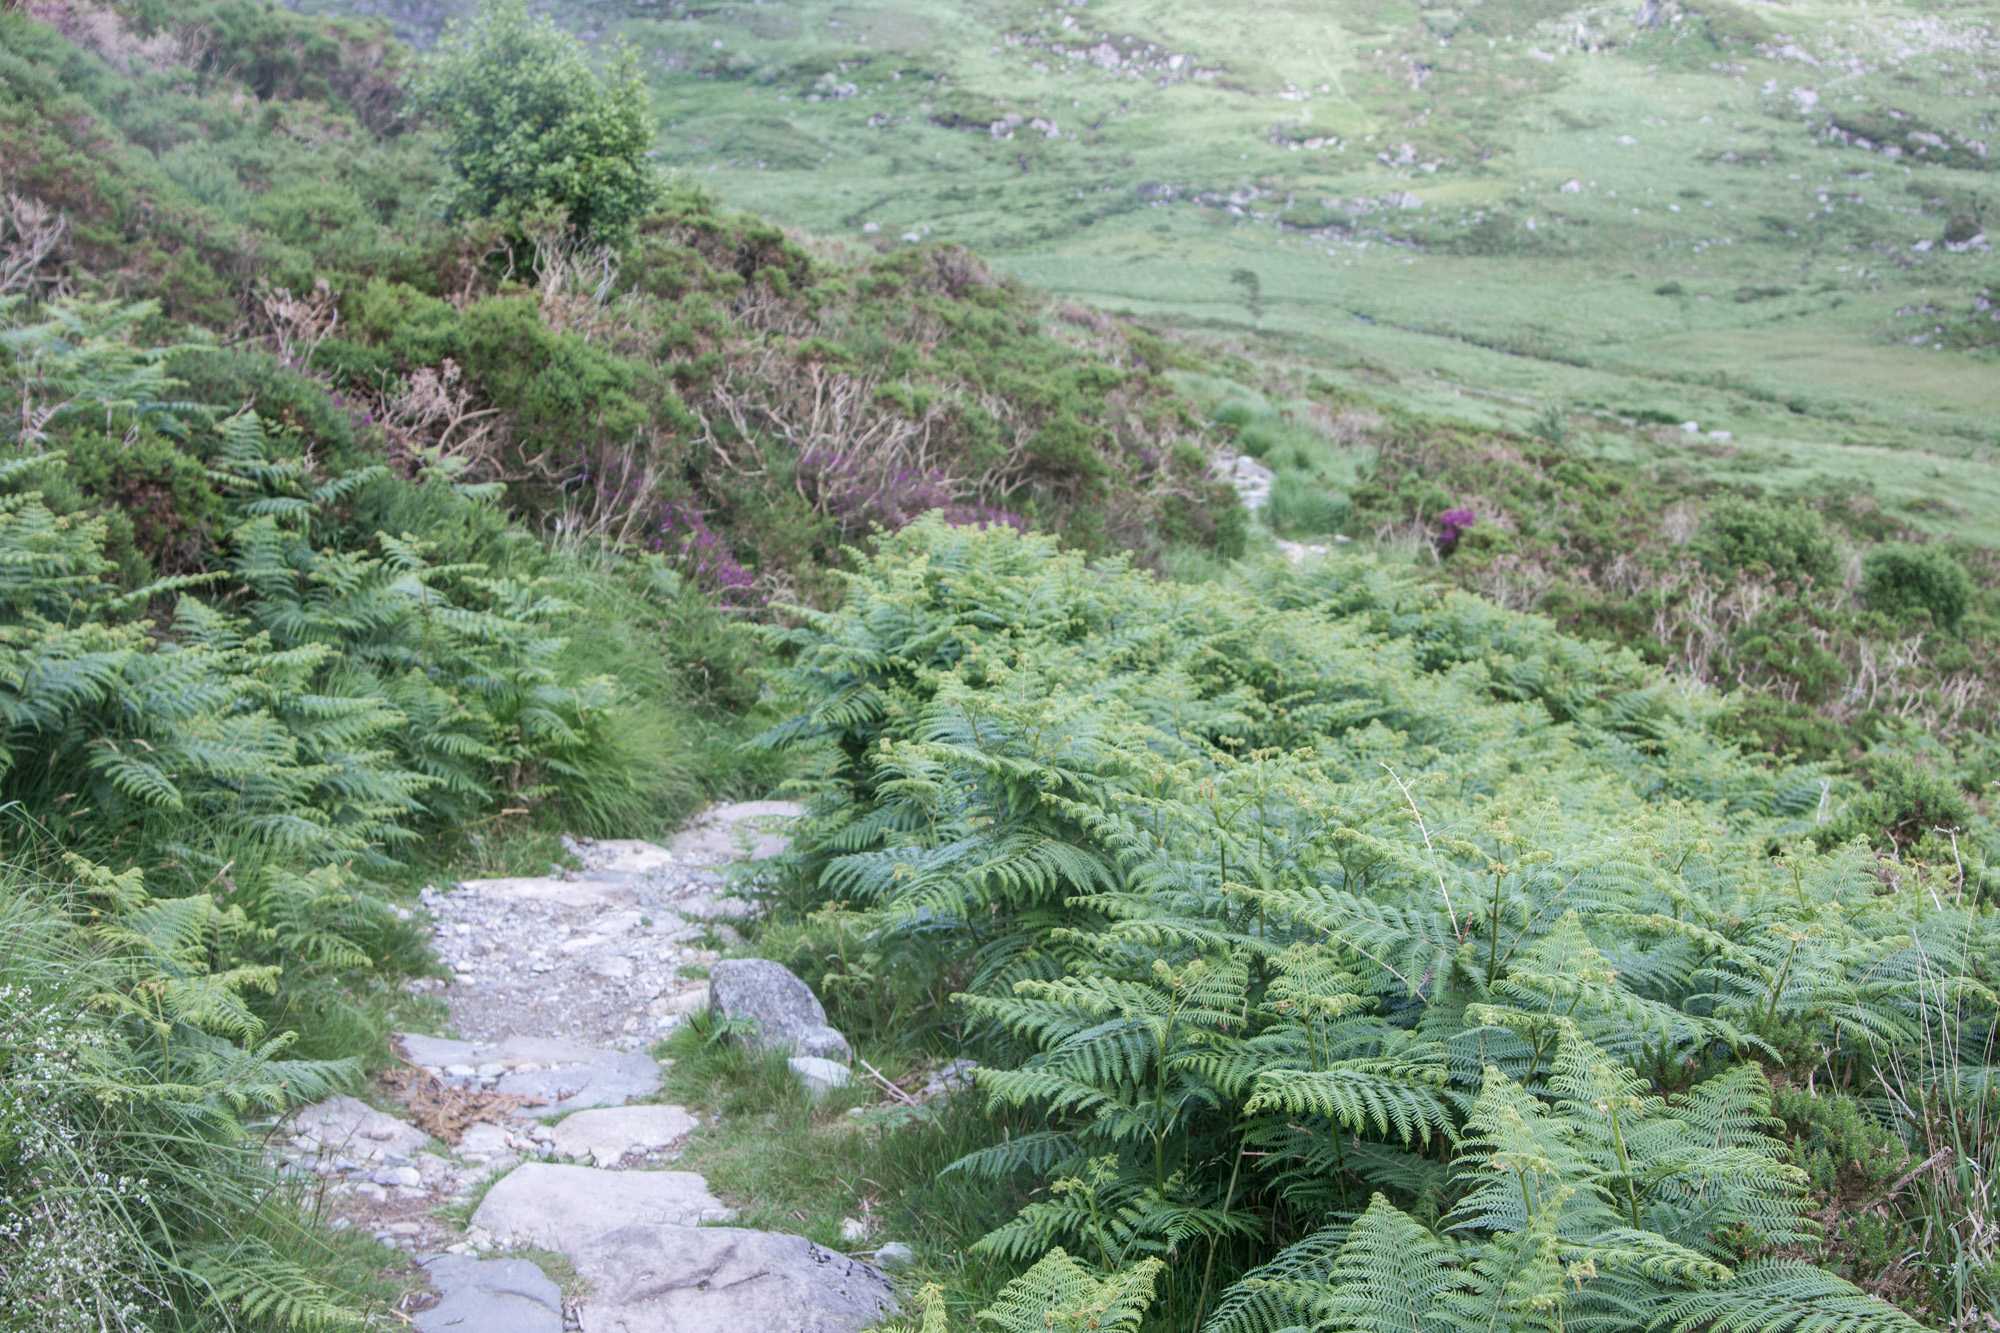 Stone path going down the Torc Mountain Trail in Killarney National Park in Ireland surrounded by ferns and grass